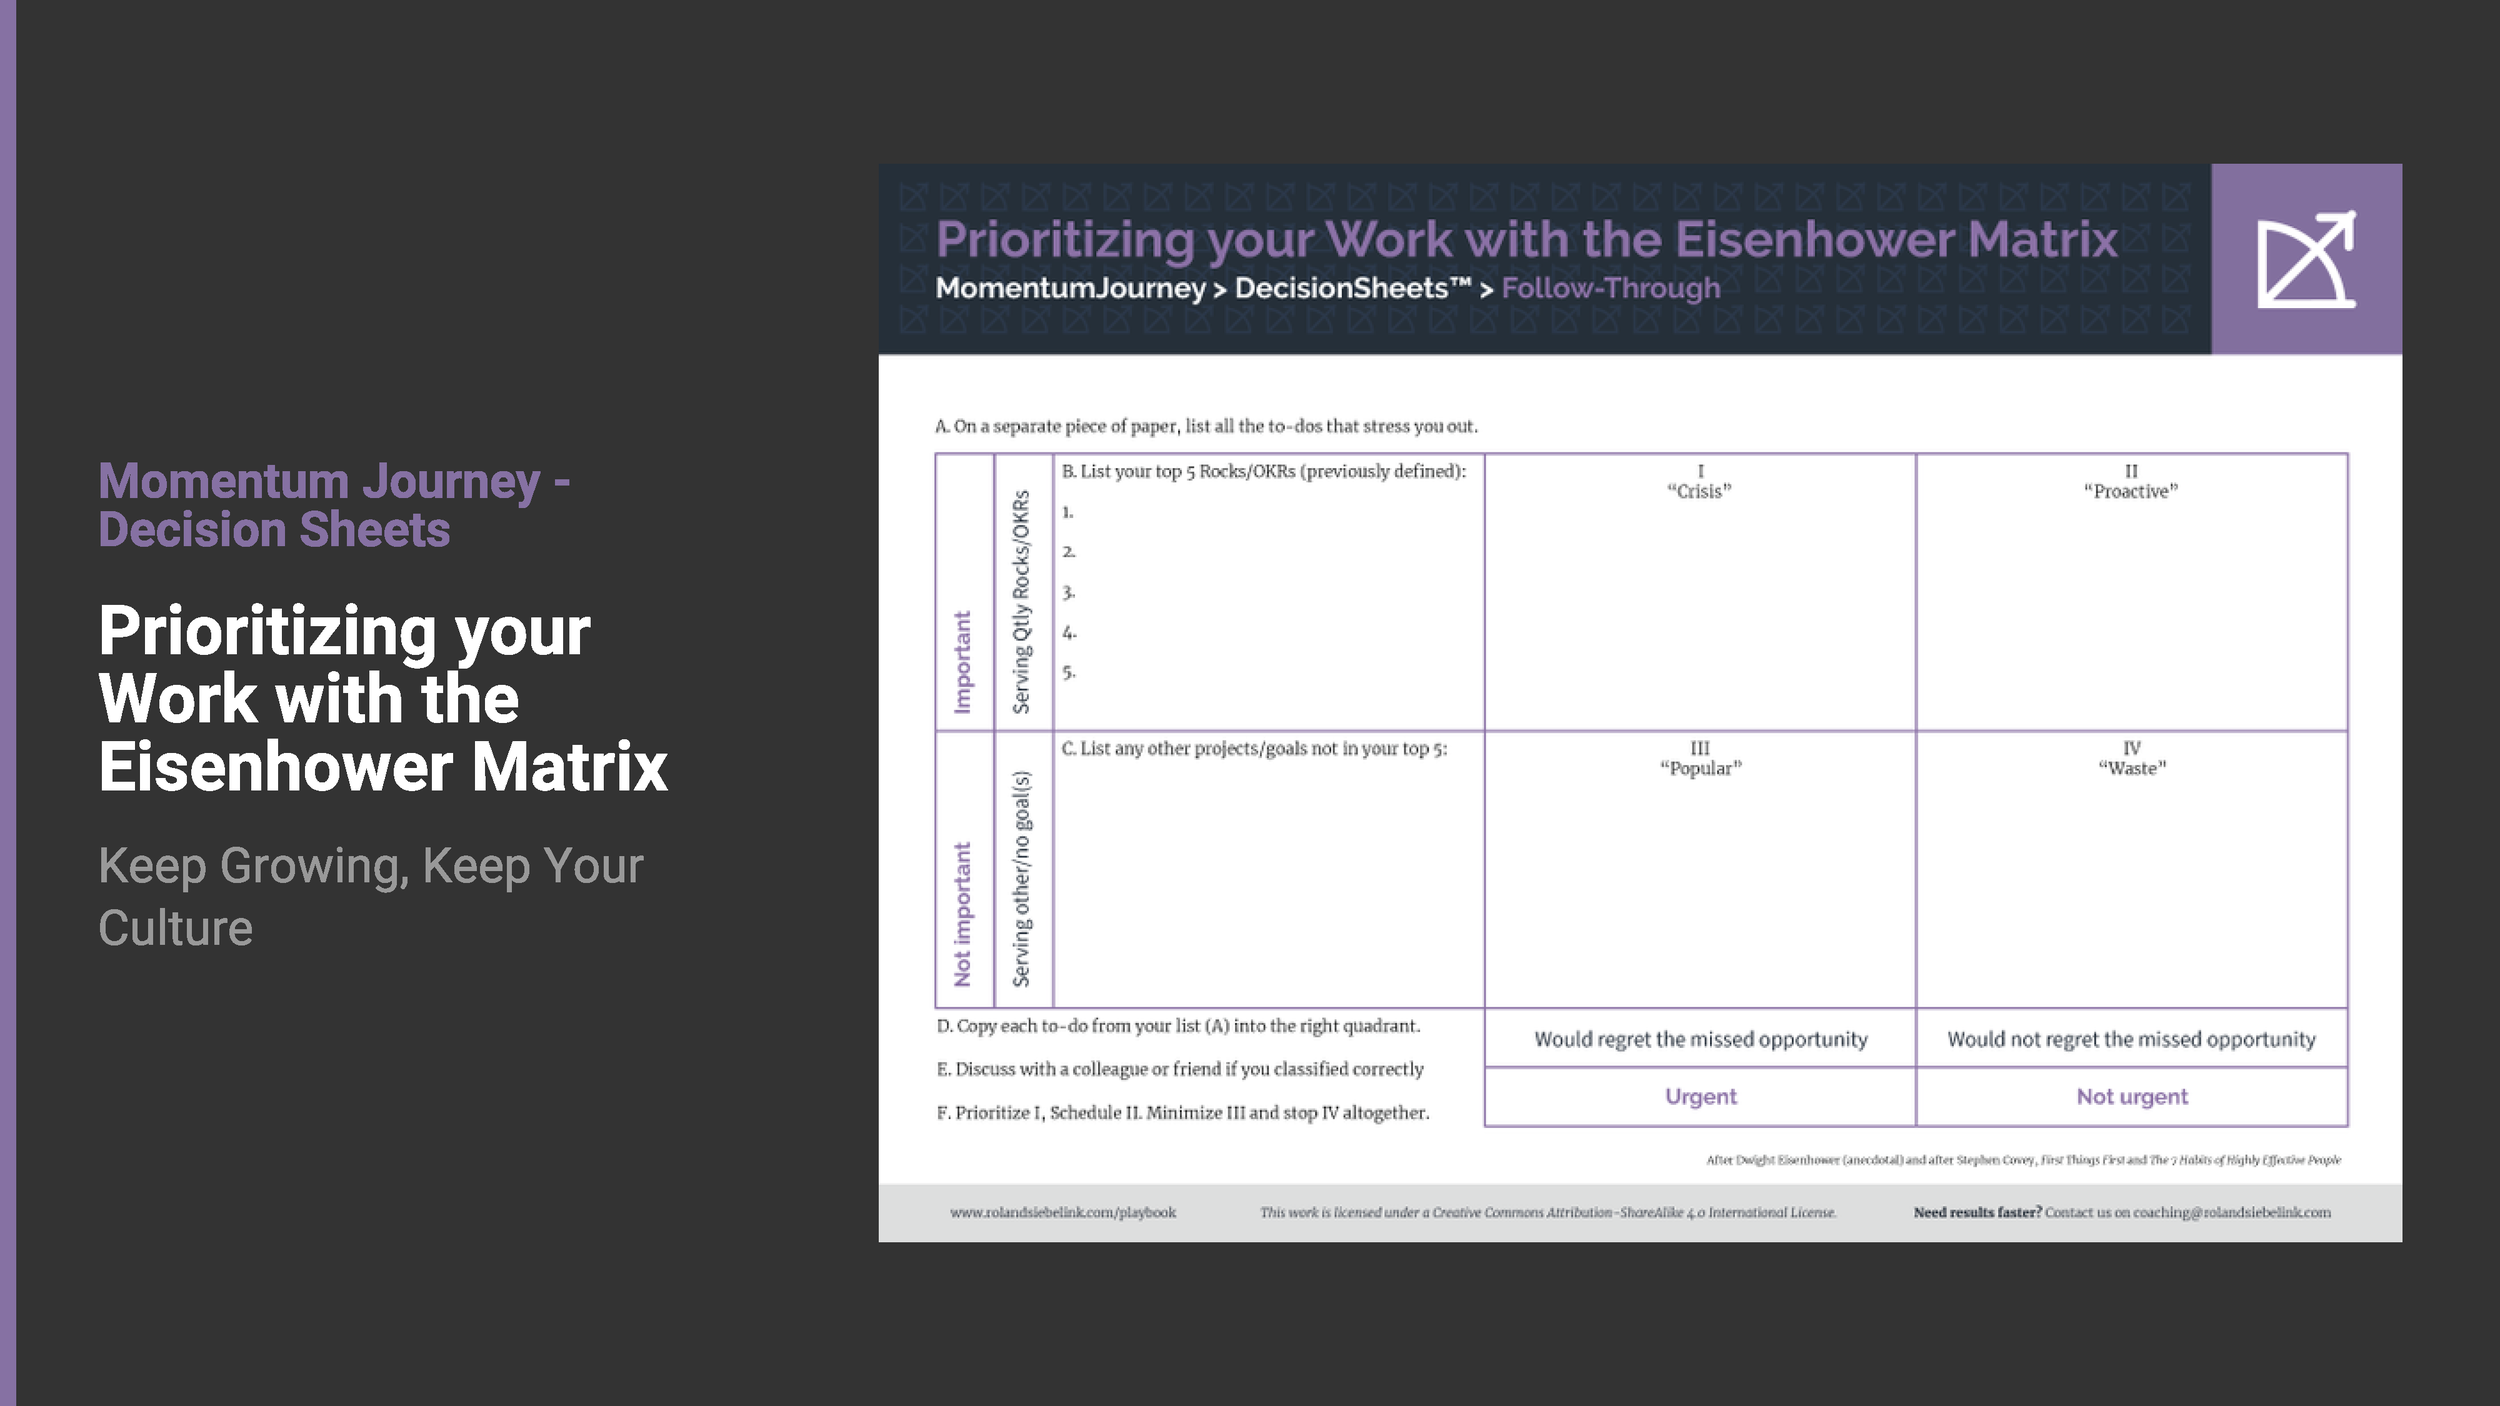 097_Prioritizing your work with the Eisenhower Matrix_Page_05.png